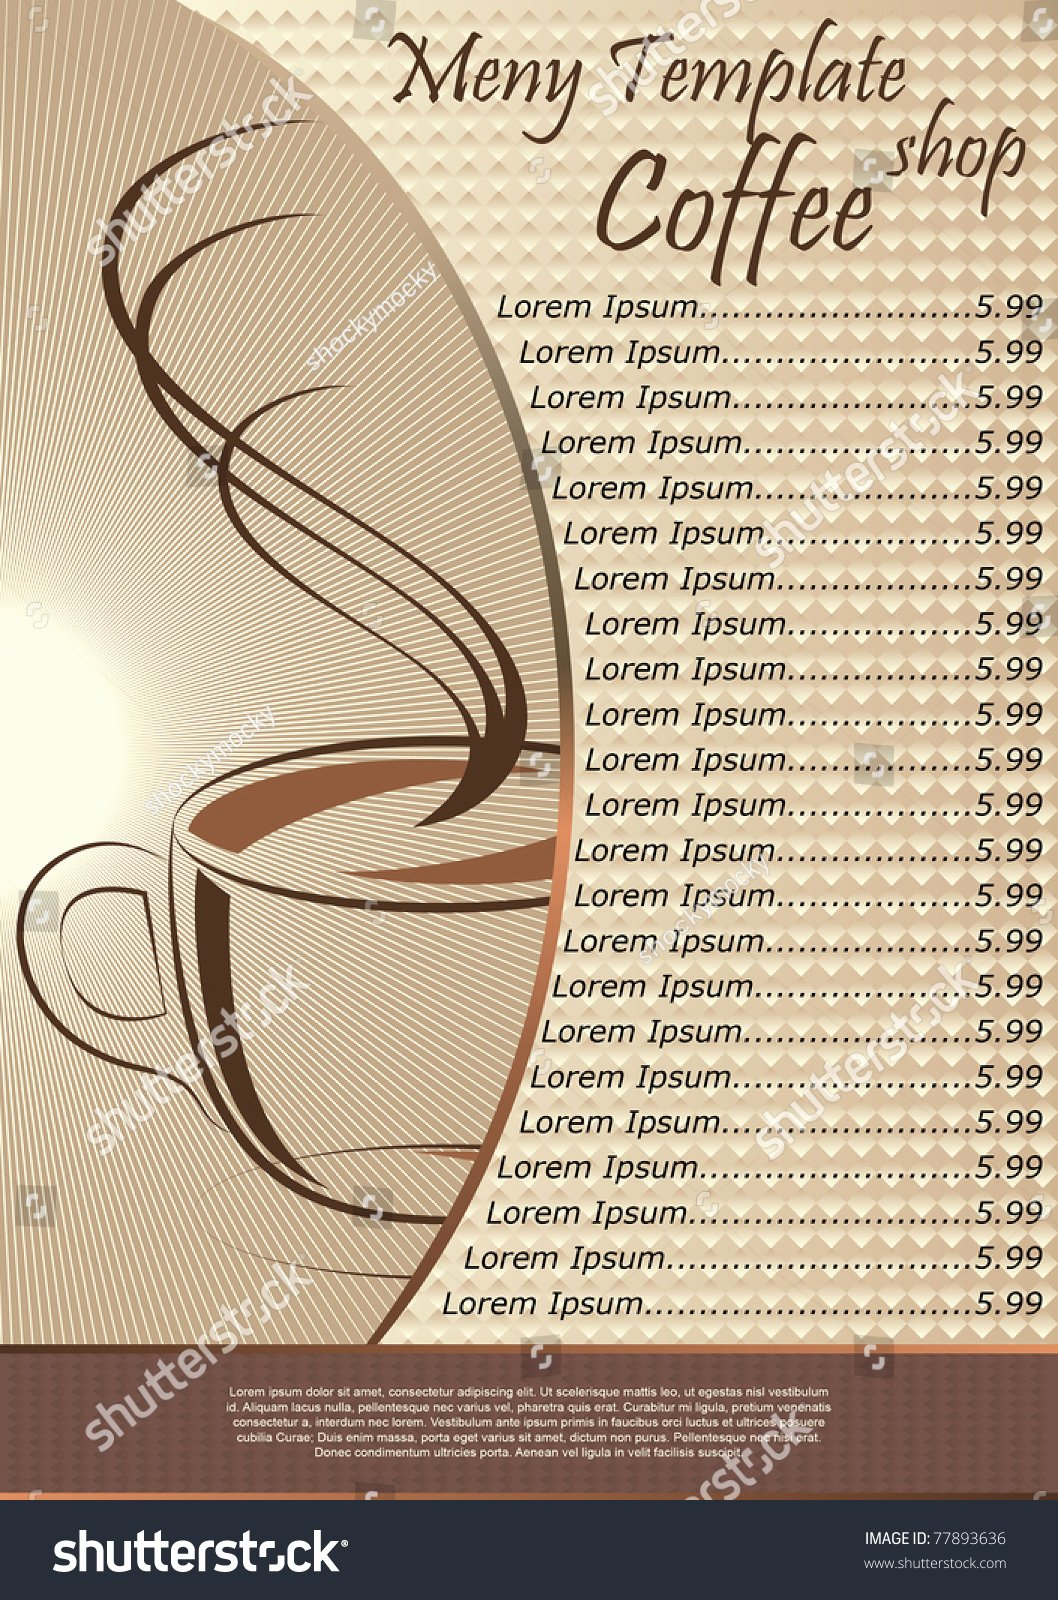 Coffee Shop Menu Template Luxury Coffee Shop Menu Template Vector Illustration Shutterstock